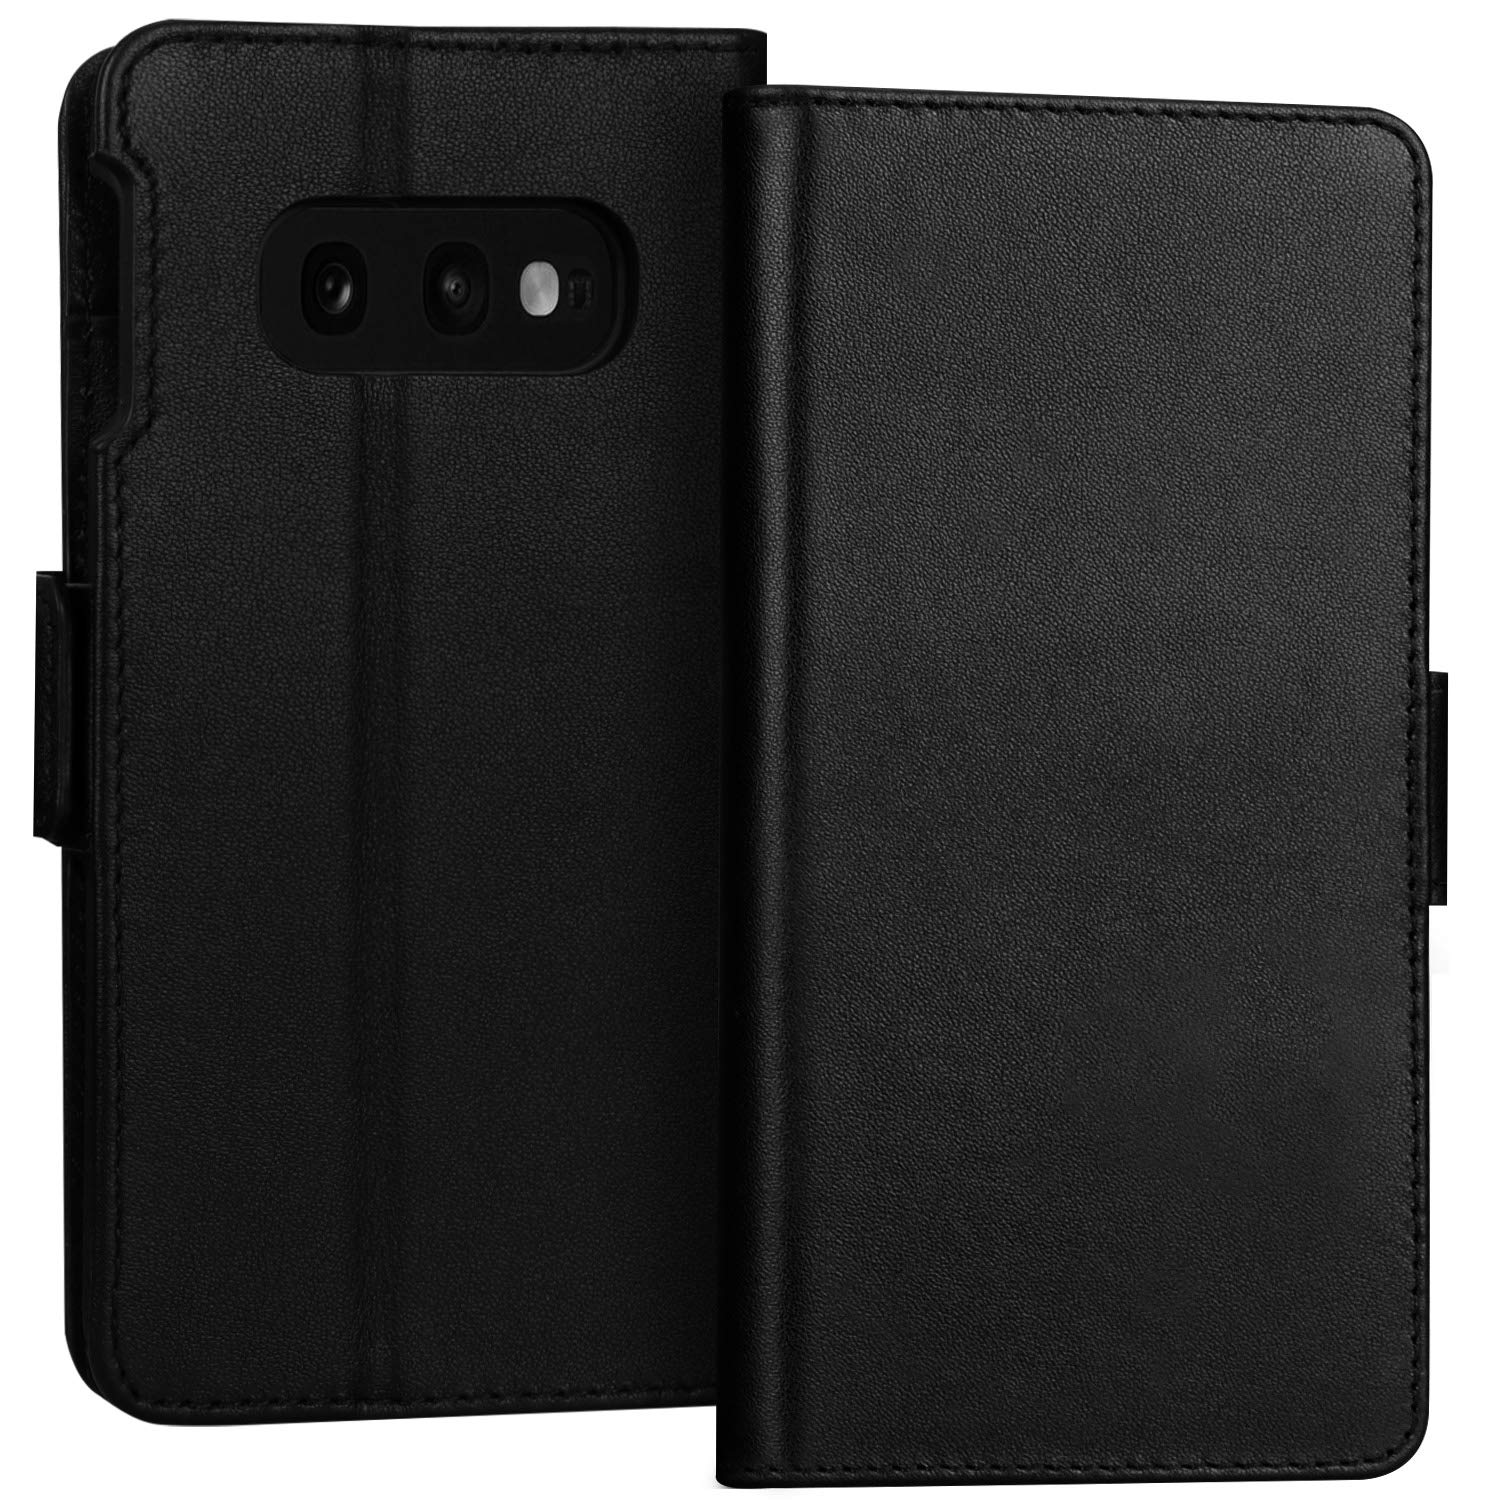 FYY Samsung Galaxy S10e 5.8'' Luxury [Cowhide Genuine Leather][RFID Blocking] Handcrafted Wallet Case, Handmade Flip Folio Case with [Kickstand Function] and [Card Slots] for Galaxy S10e (5.8'') Black by FYY